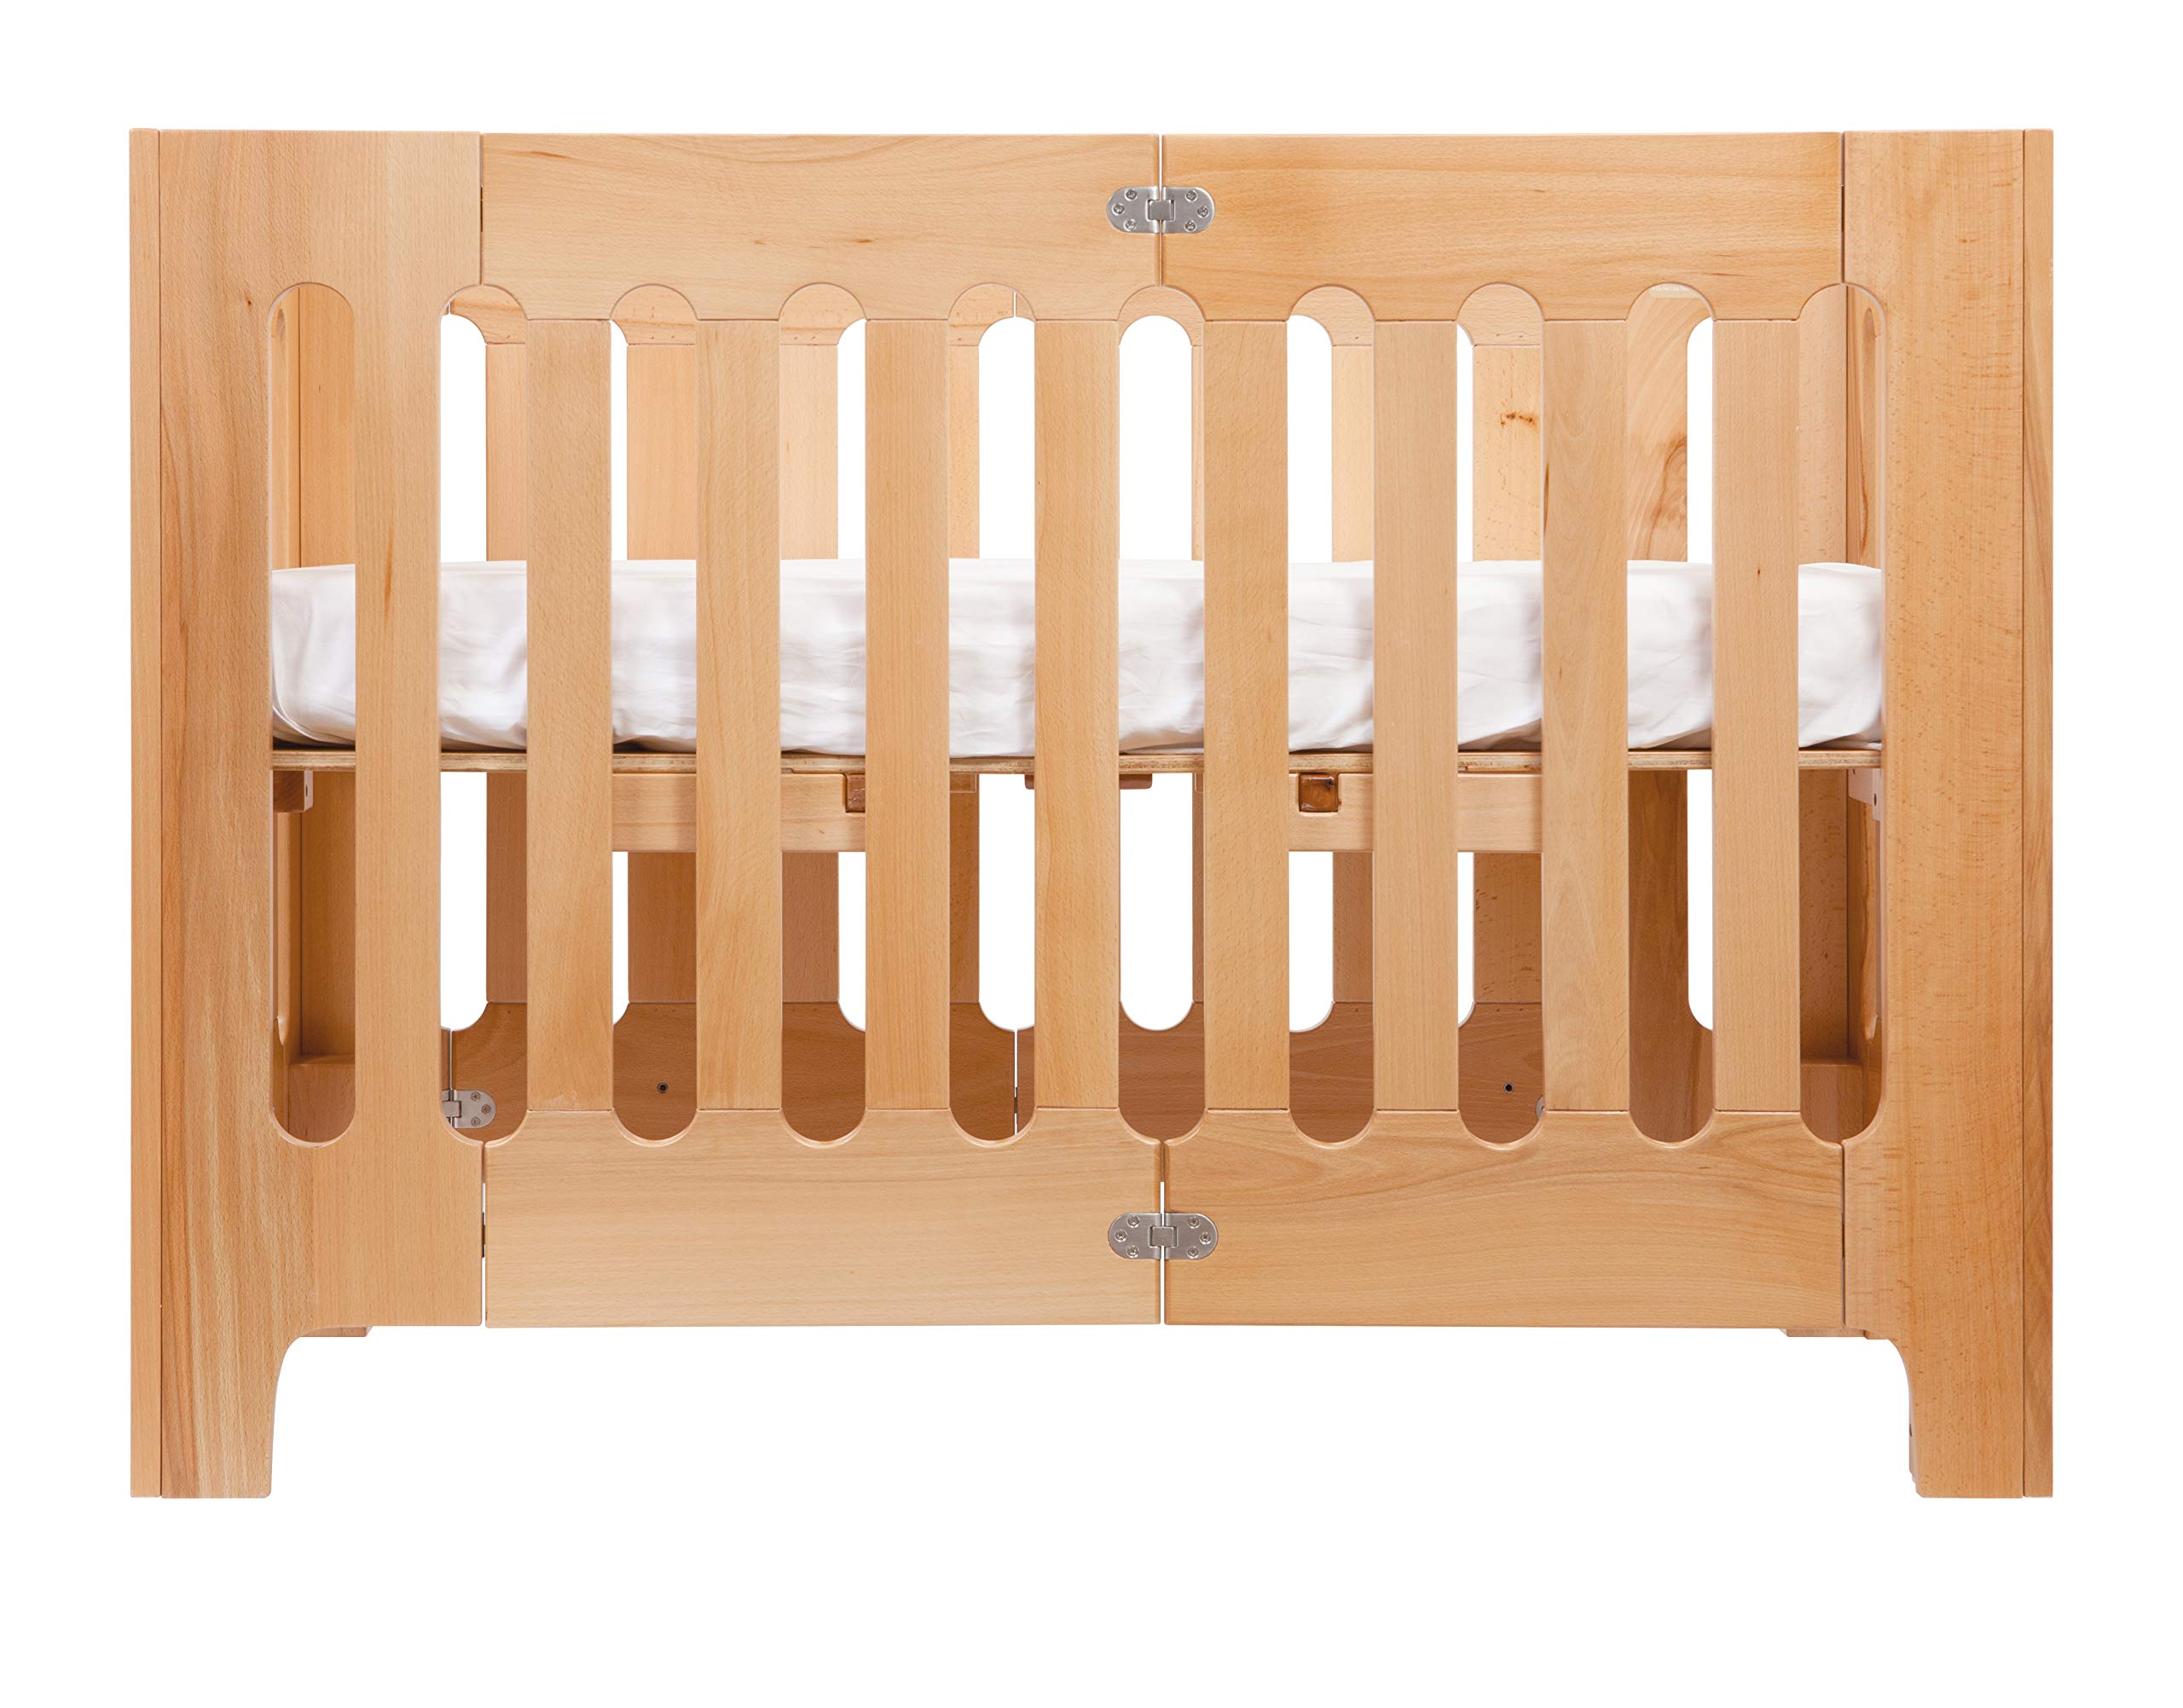 Bloom Alma Papa Baby Crib/Cot (Convertible, Sold Wood, 0-4 Years) (Natural)  Alma Papa is suitable from newborn to 4 years, beautiful, modern solid wood crib with 2 mattress heights allow use as a bassinet & full-size crib patented compact-fold construction for easy storage & transport (durable storage bag available separately) open slats on all four sides maximize all important air-flow 2